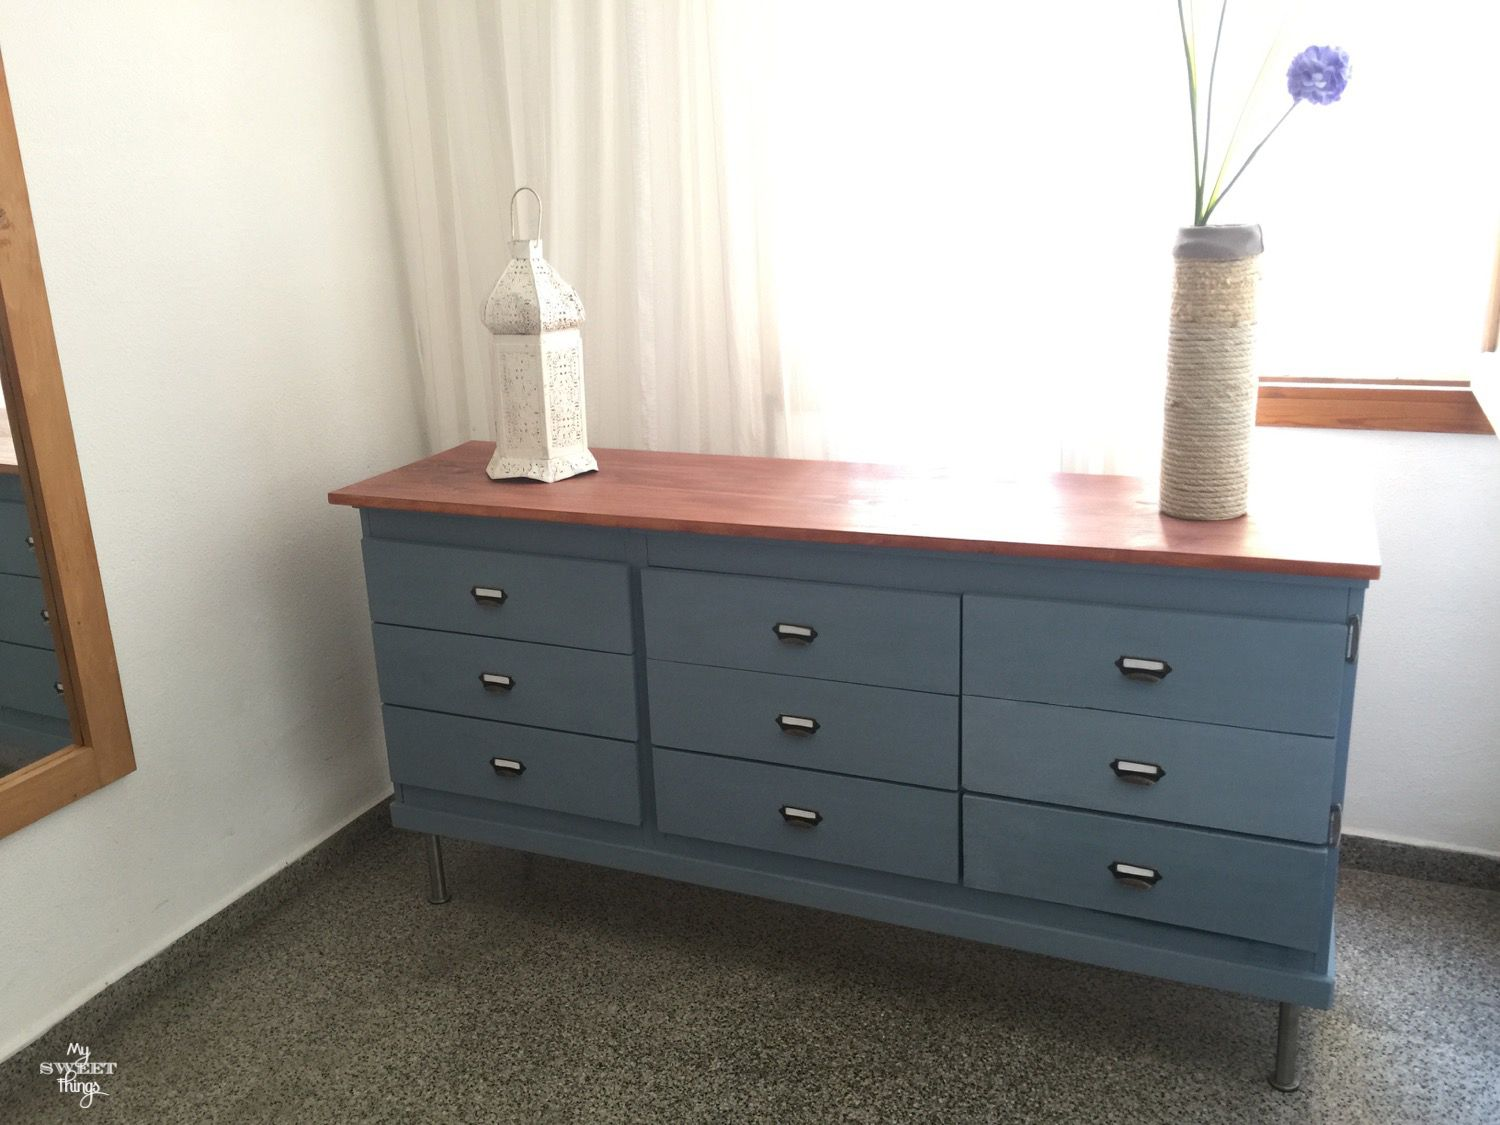 How To Upcycle Old Furniture · Room makeover ·  Federal Blue Milk Paint Dresser · Via www.sweethings.net